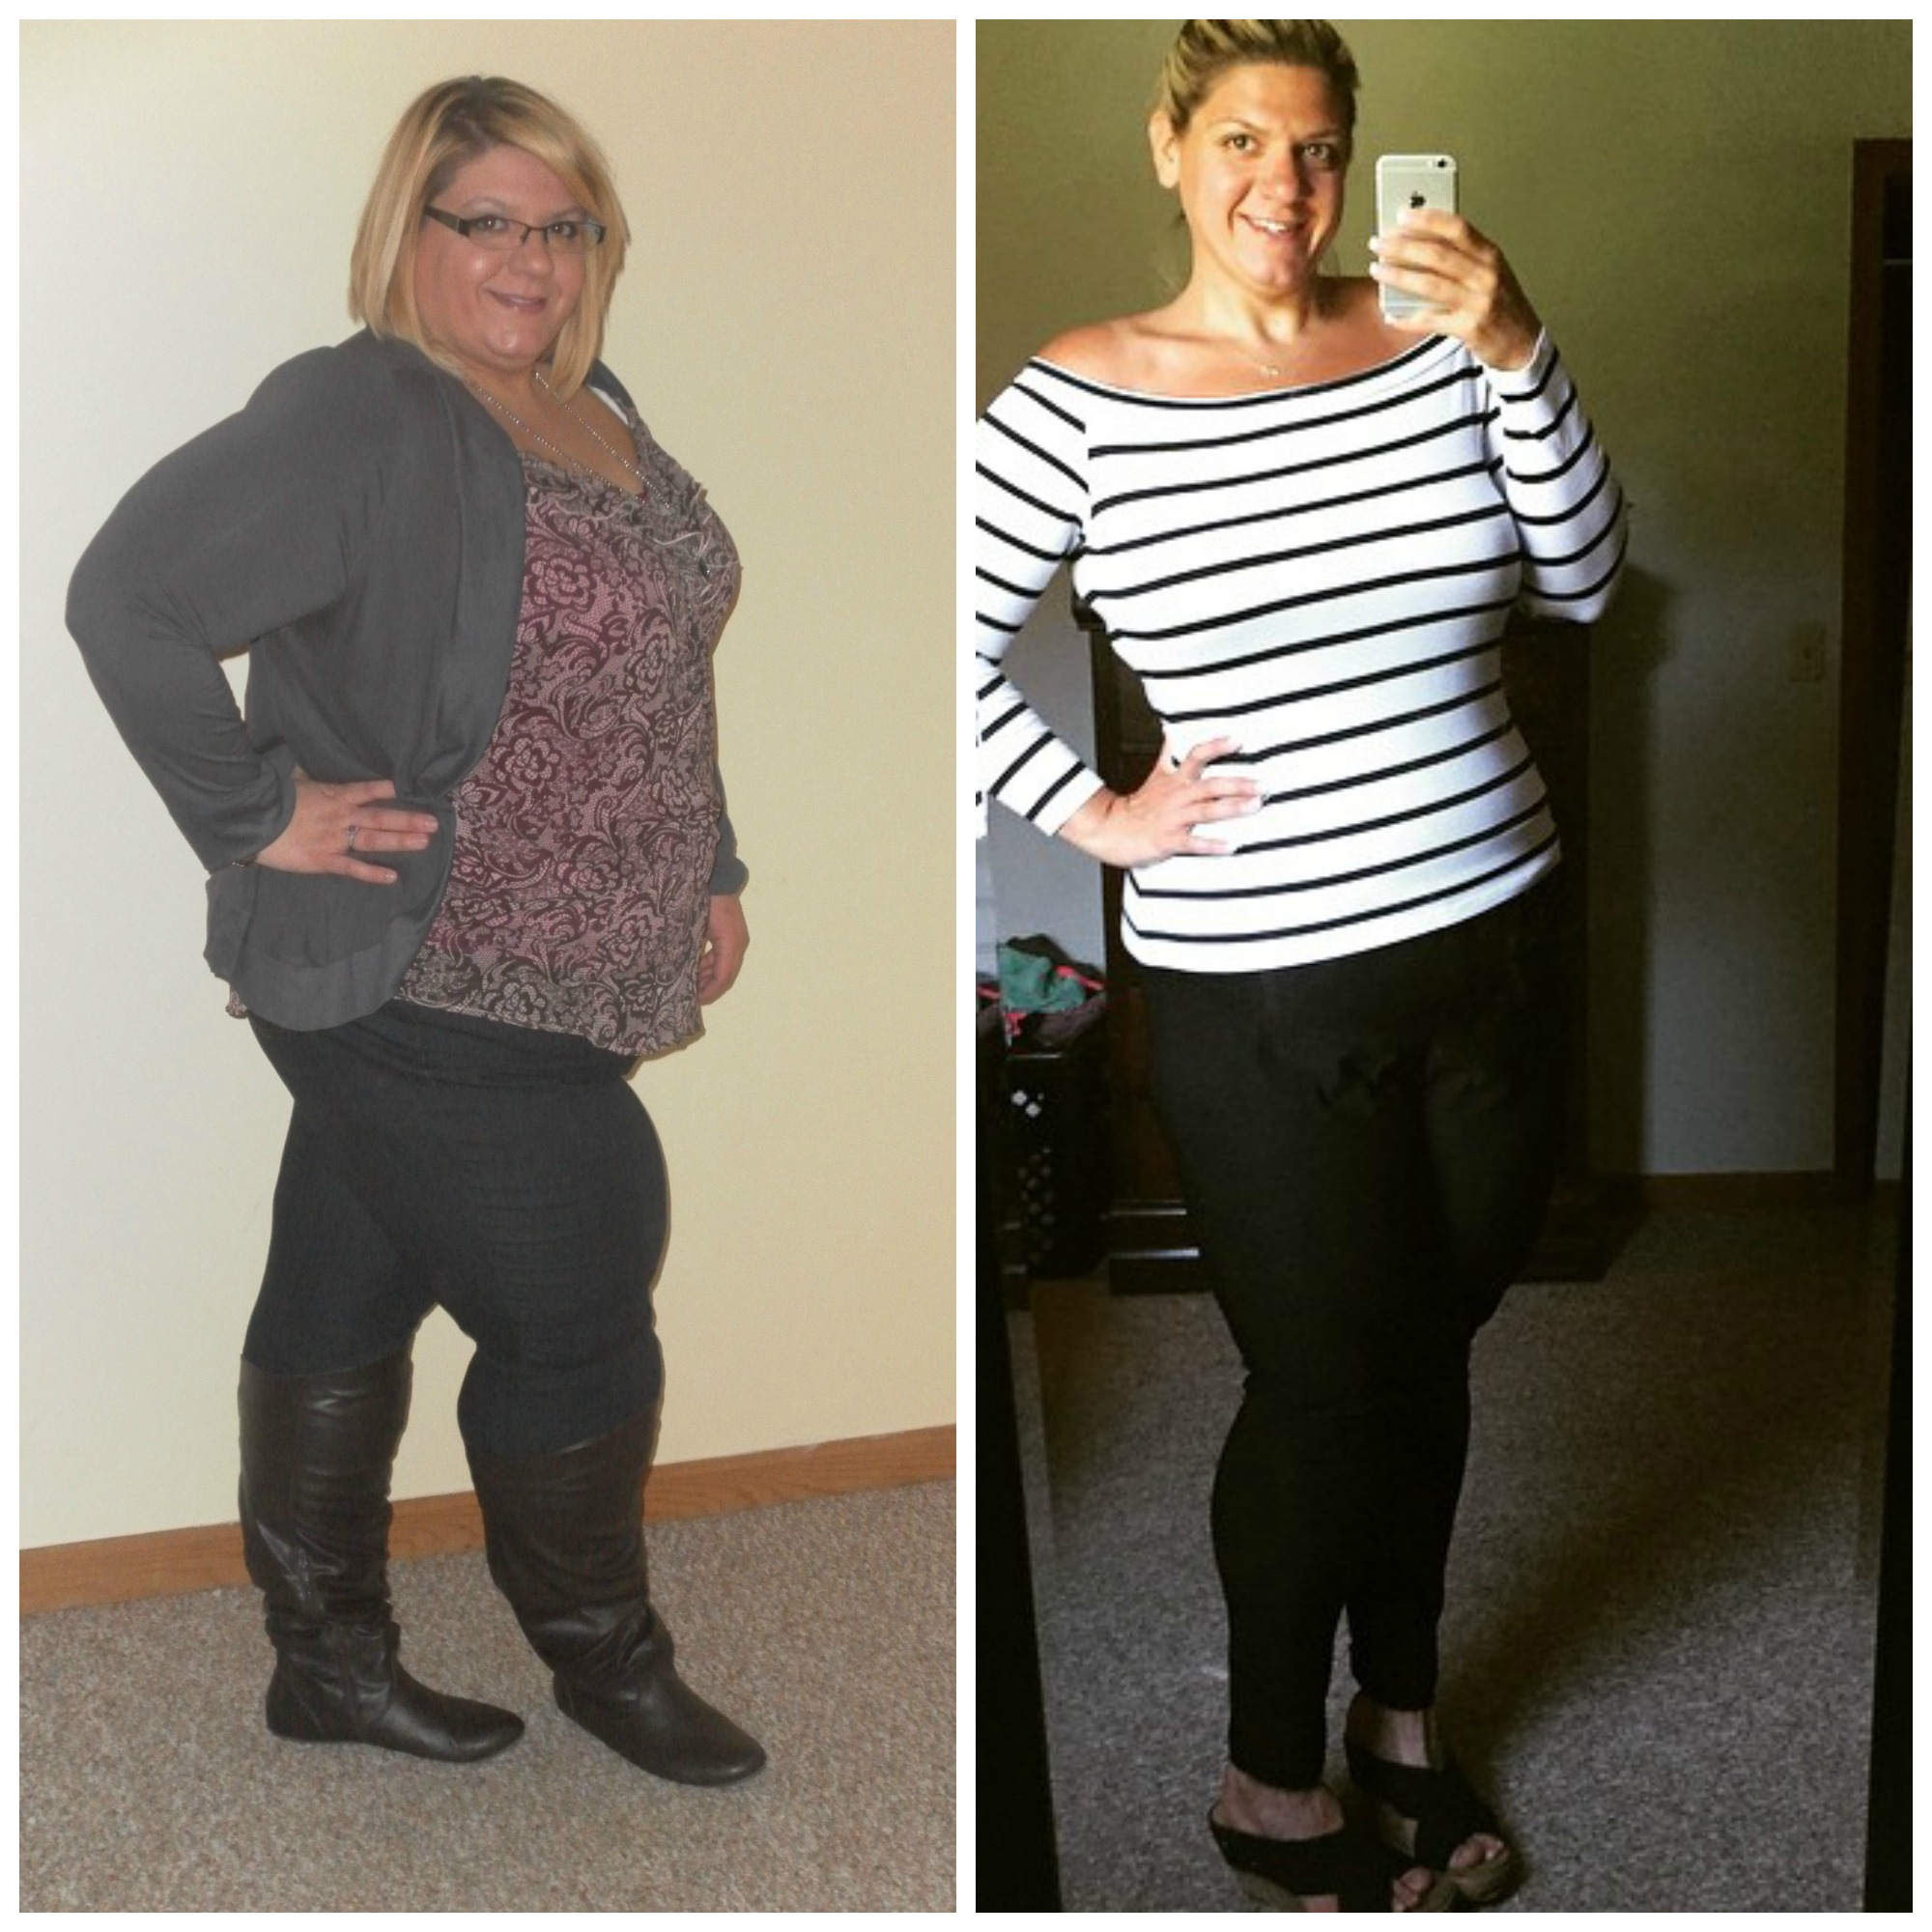 Lauren lost 140 pounds! See my before and after weight loss pictures, and read amazing weight loss success stories from real women and their best weight loss diet plans and programs. Motivation to lose weight with walking and inspiration from before and after weightloss pics and photos.